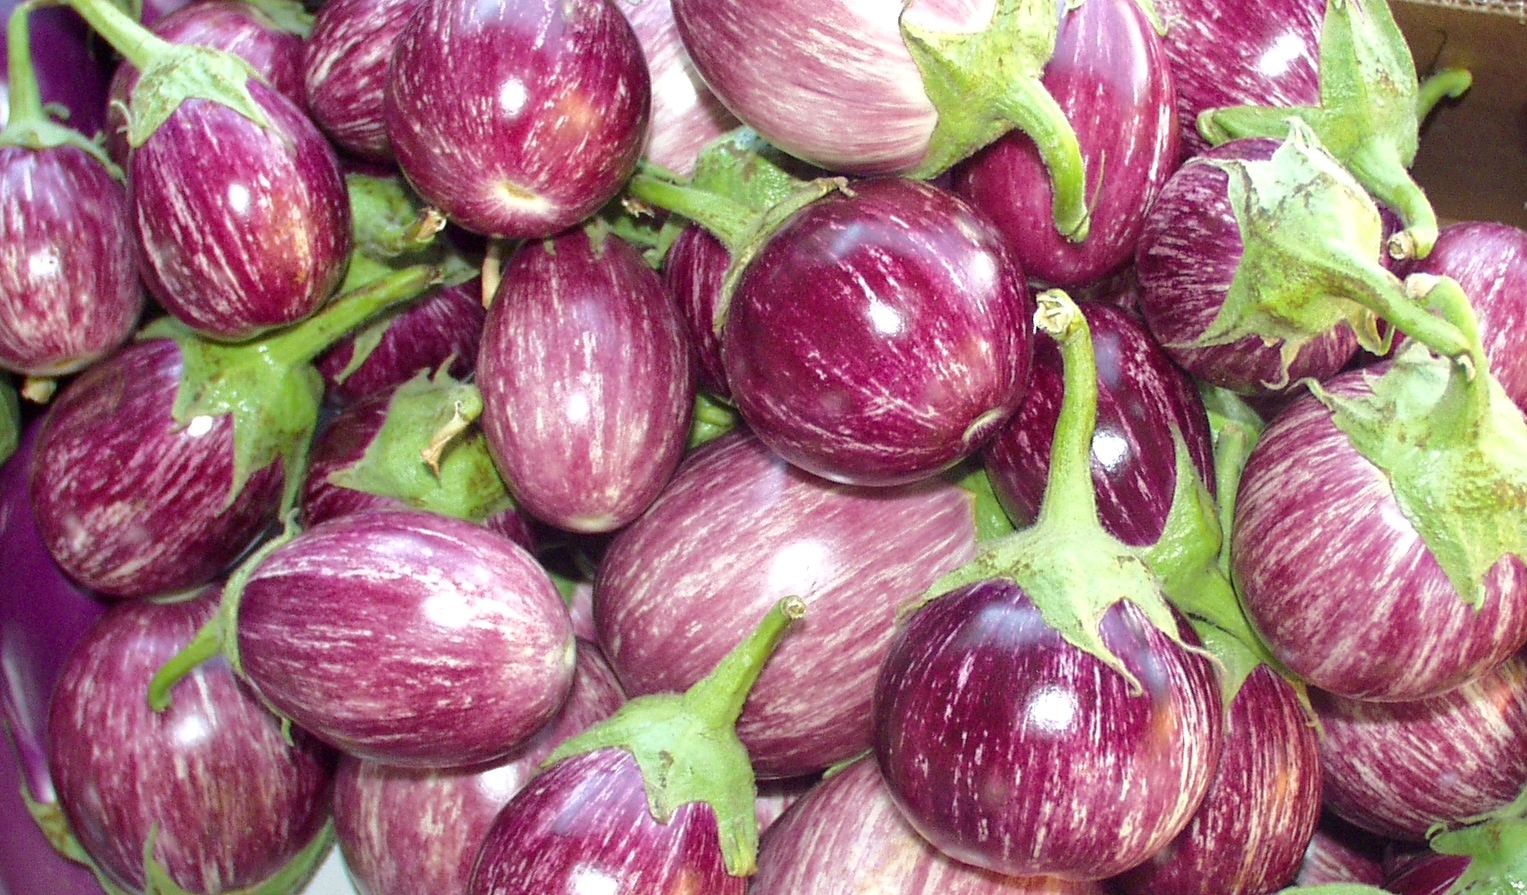 Purple Rain eggplant from Alvarez. Photo copyright 2009 by Zachary D. Lyons.